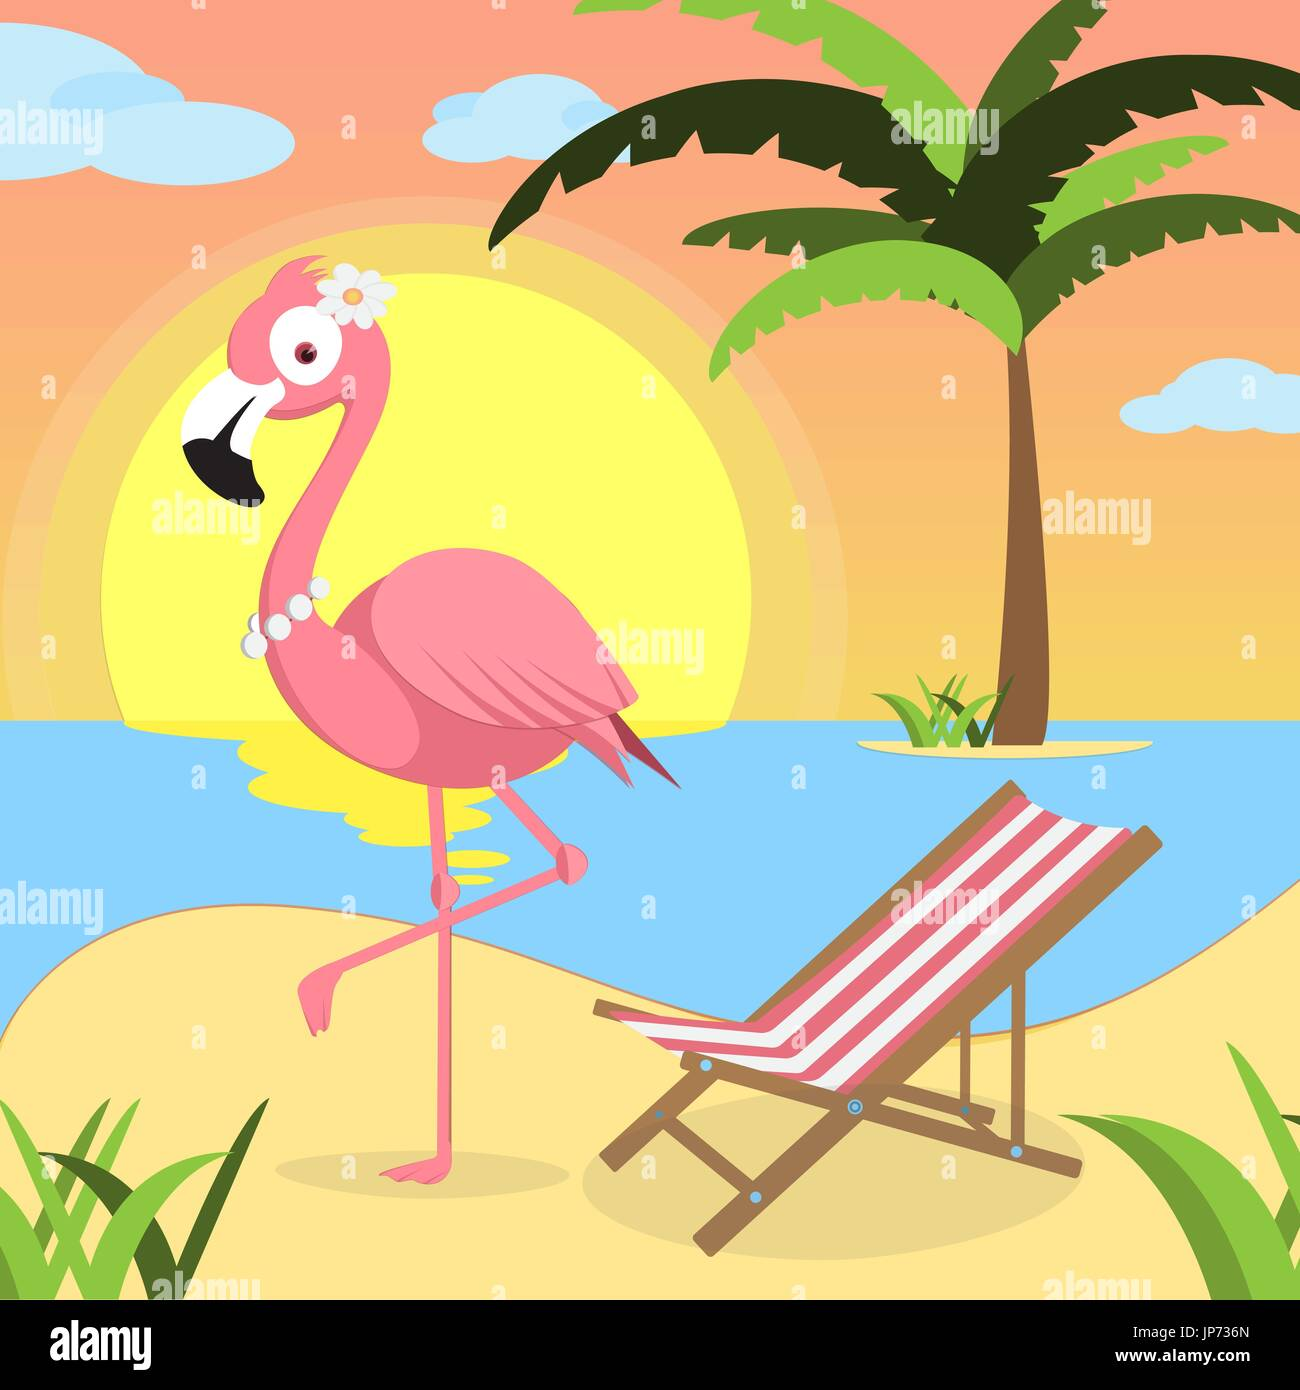 Summer background with Pink flamingo and red white lounger, of beach at sunset with waves, clouds and palm tree on the horizont. seaside view poster. vector illustration. Flat design - Stock Vector